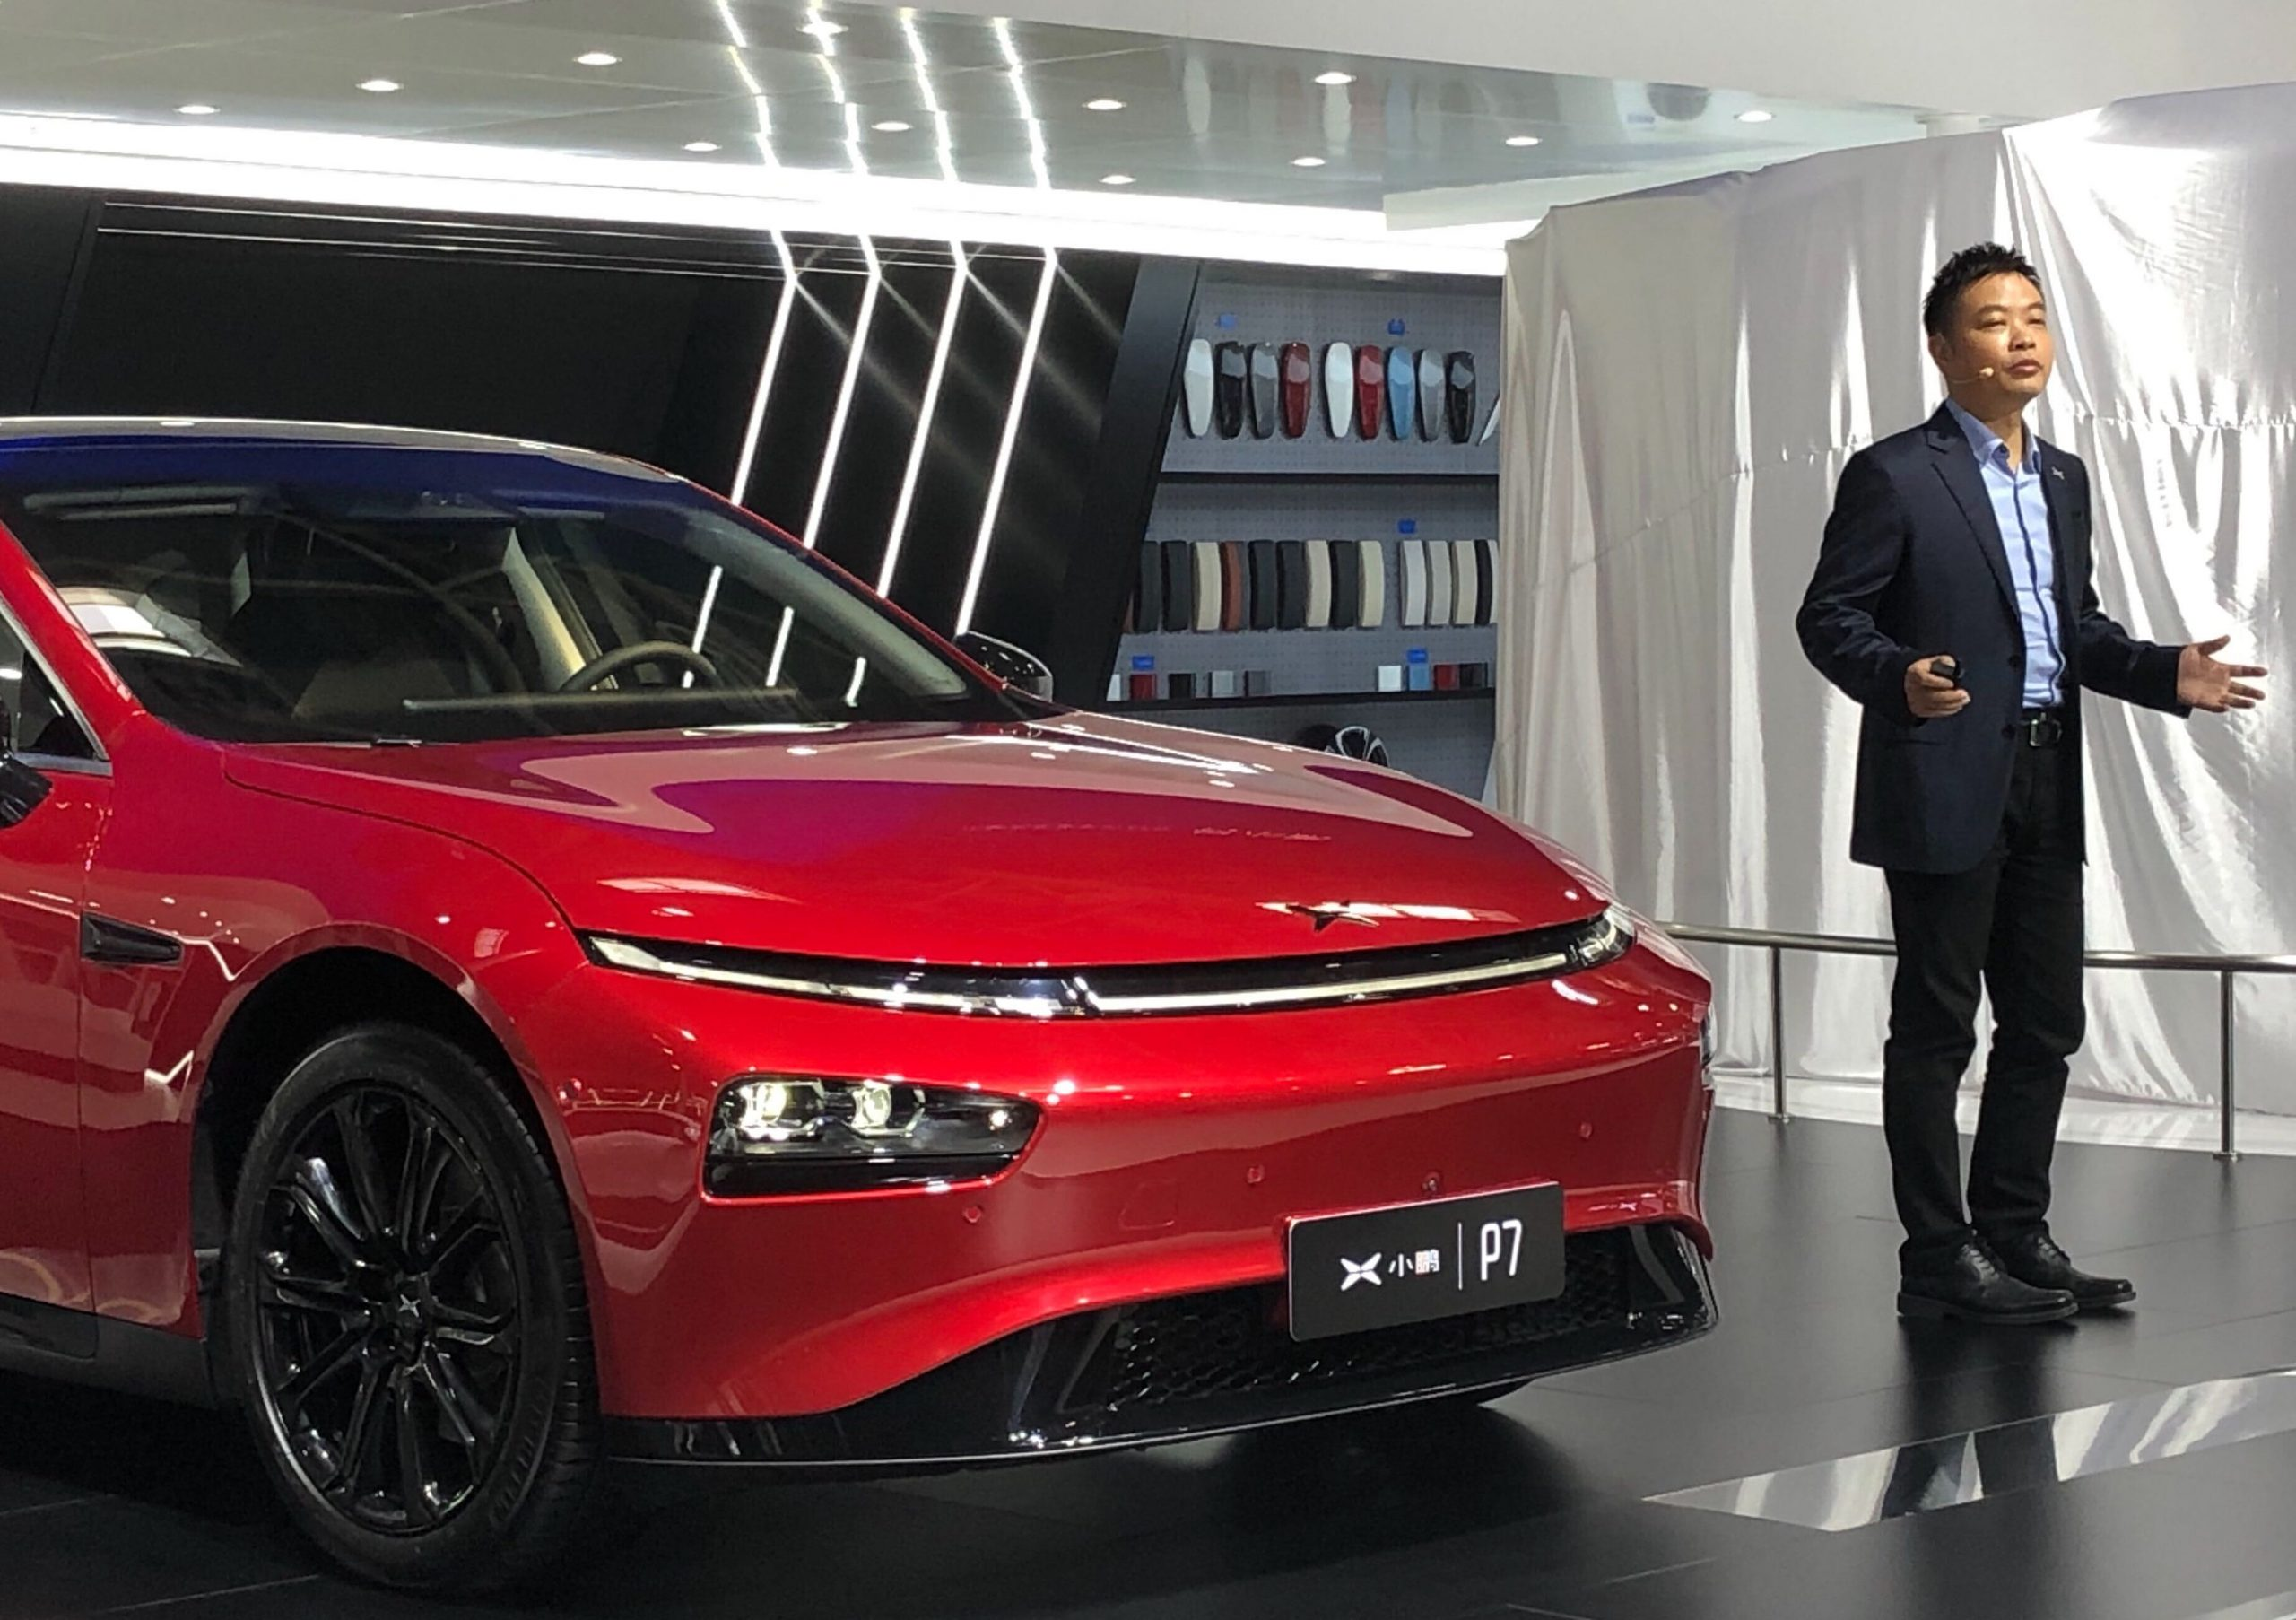 Electric car maker Xpeng is launching driverless features to rival Tesla